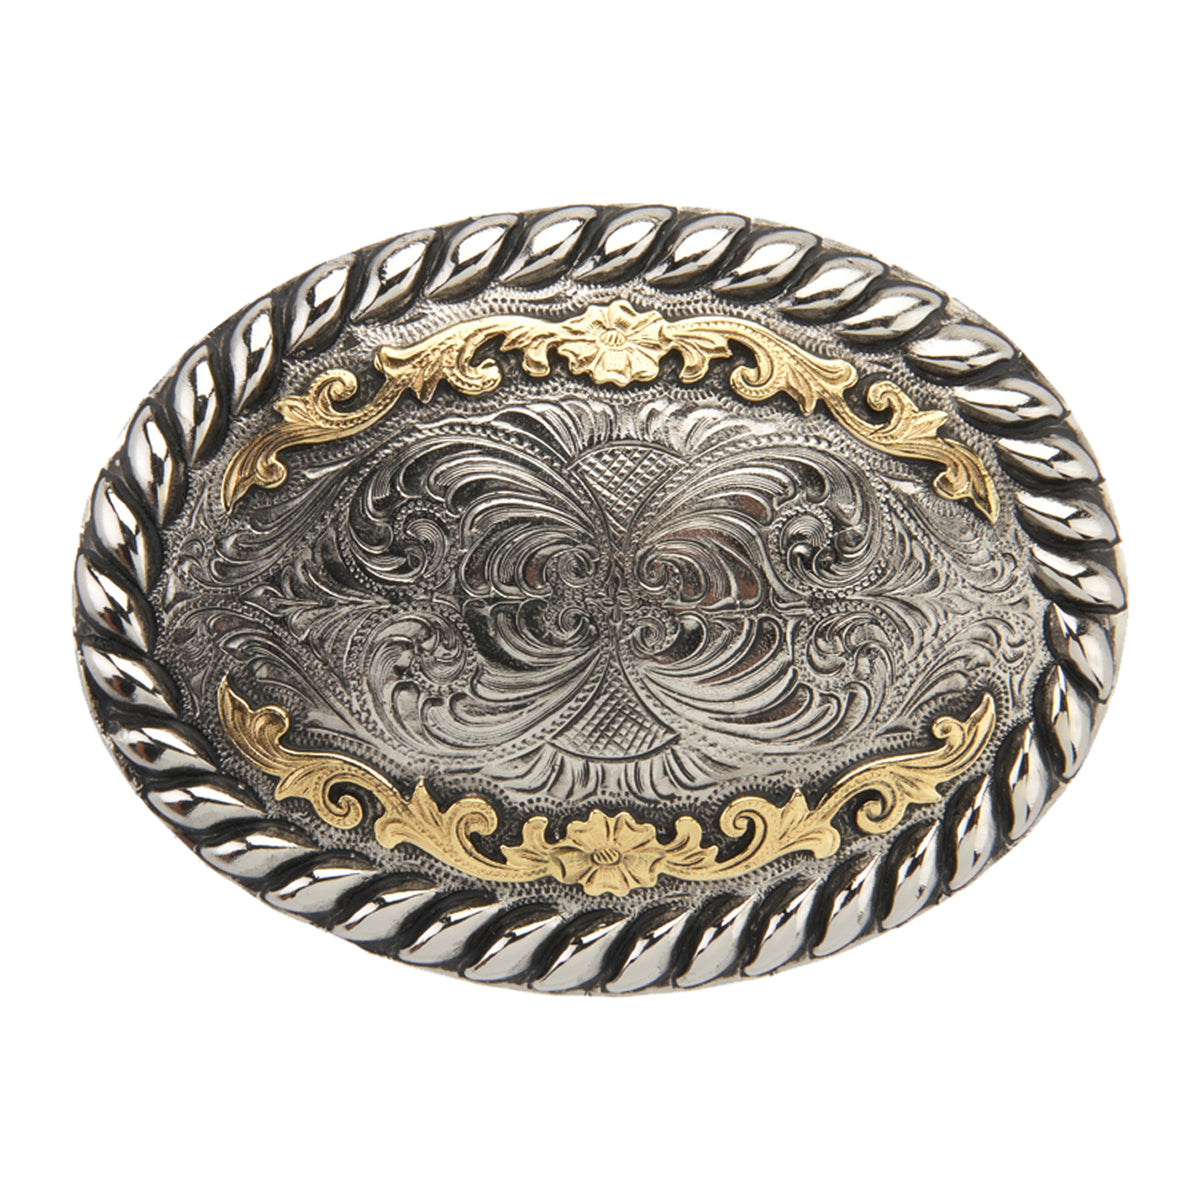 Oval with Embossed Heavy Rope Buckle